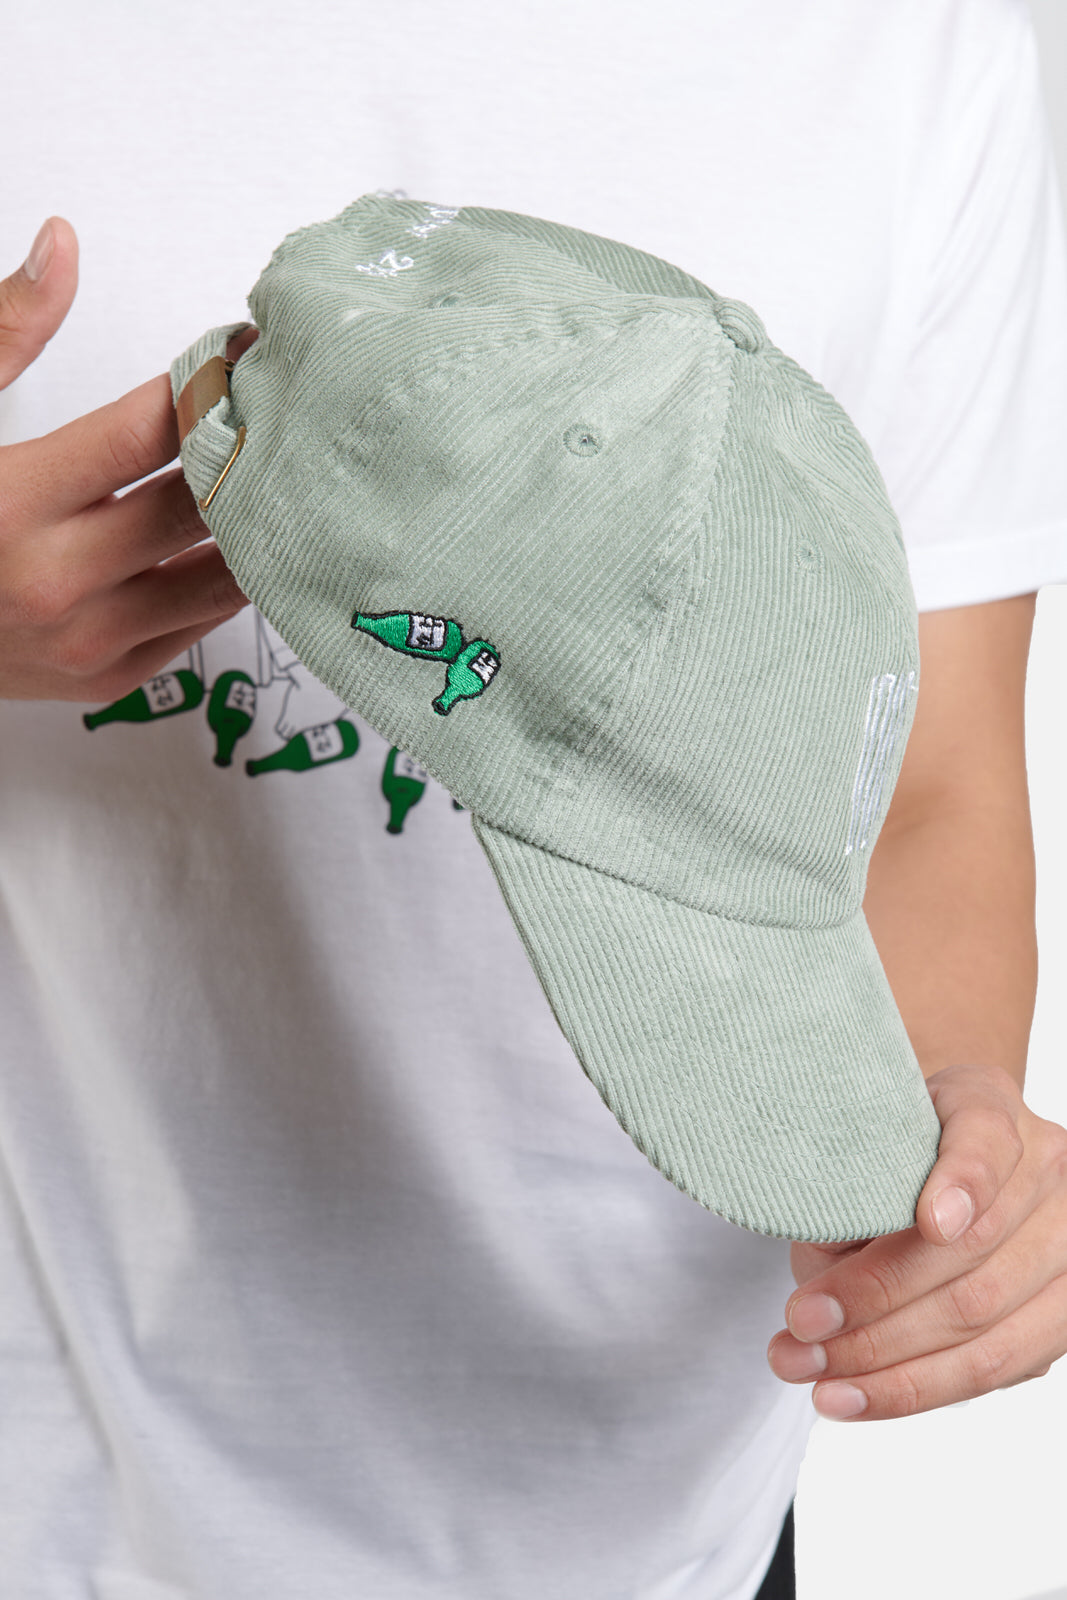 sutro article 7 logo hat - scrt society